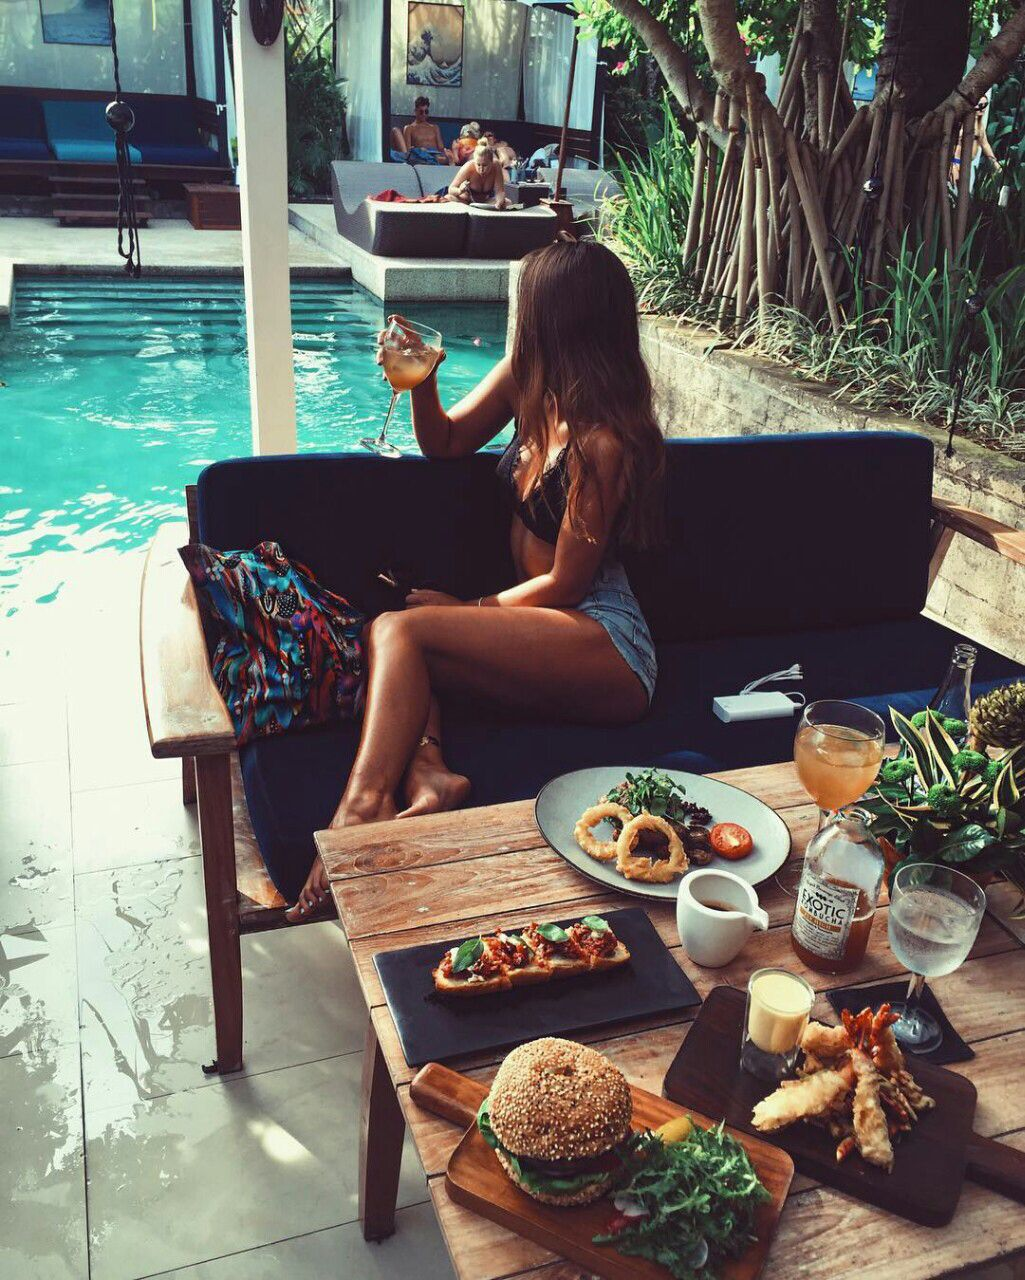 1000 images about relax on pinterest hammocks beaches and pools